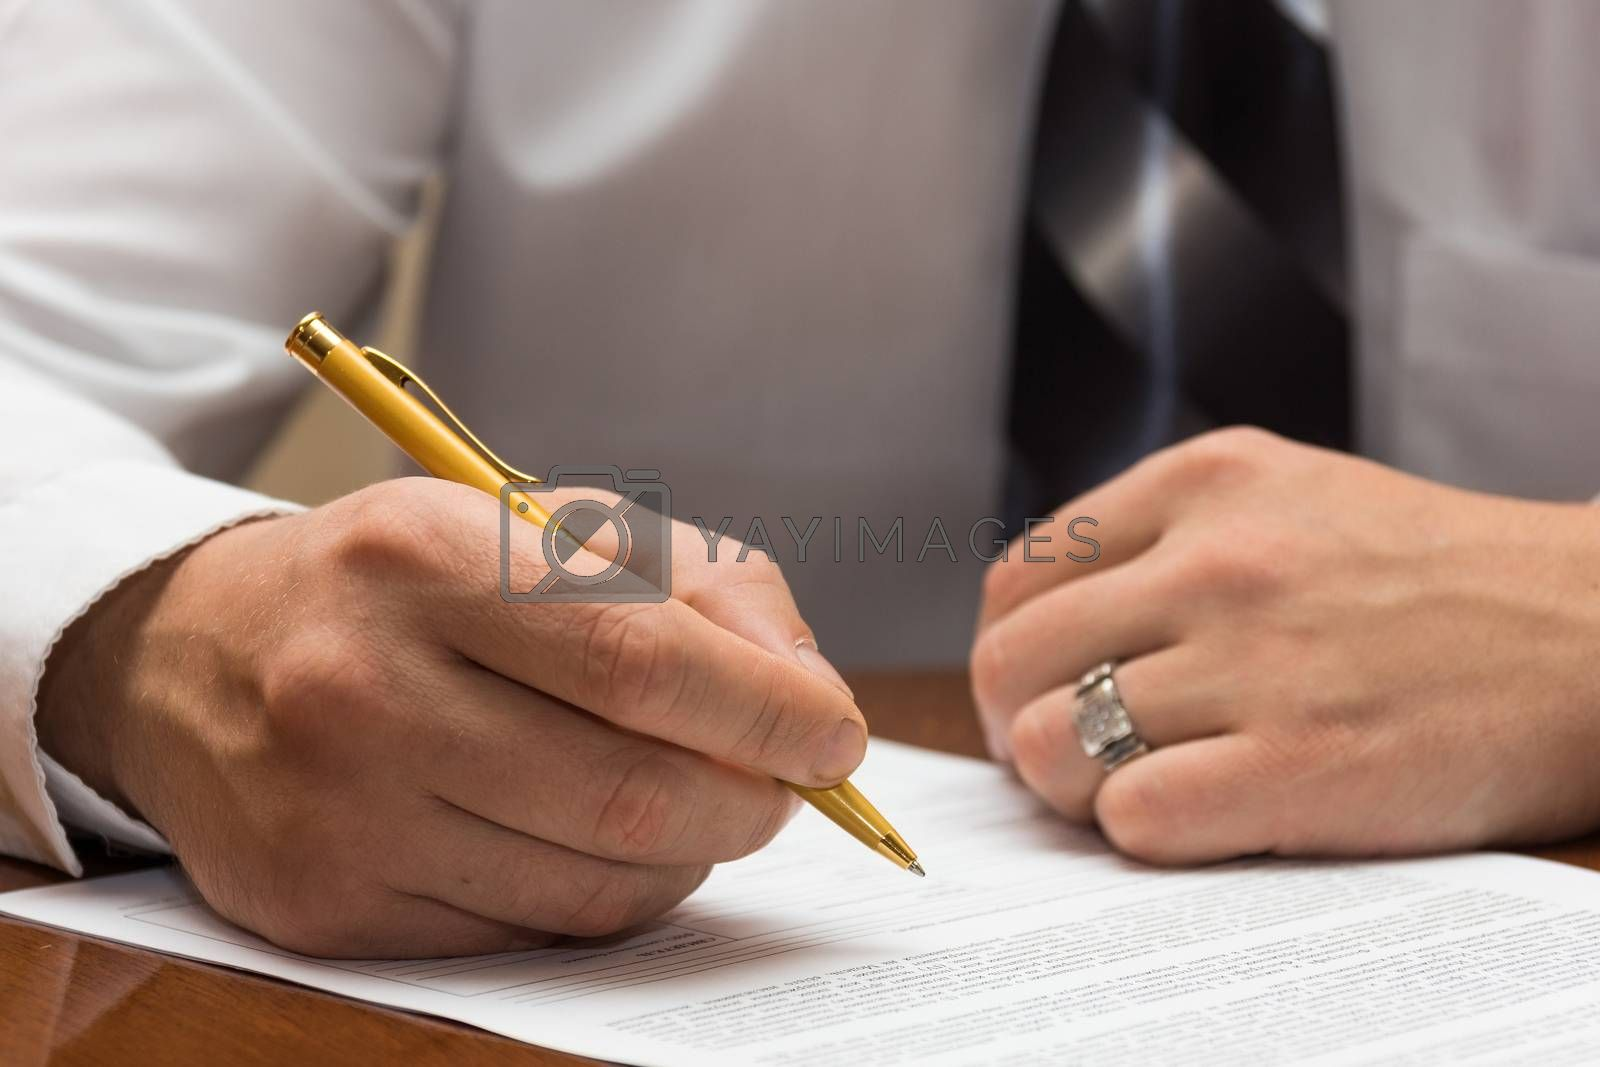 The photo depicts a man signs a document